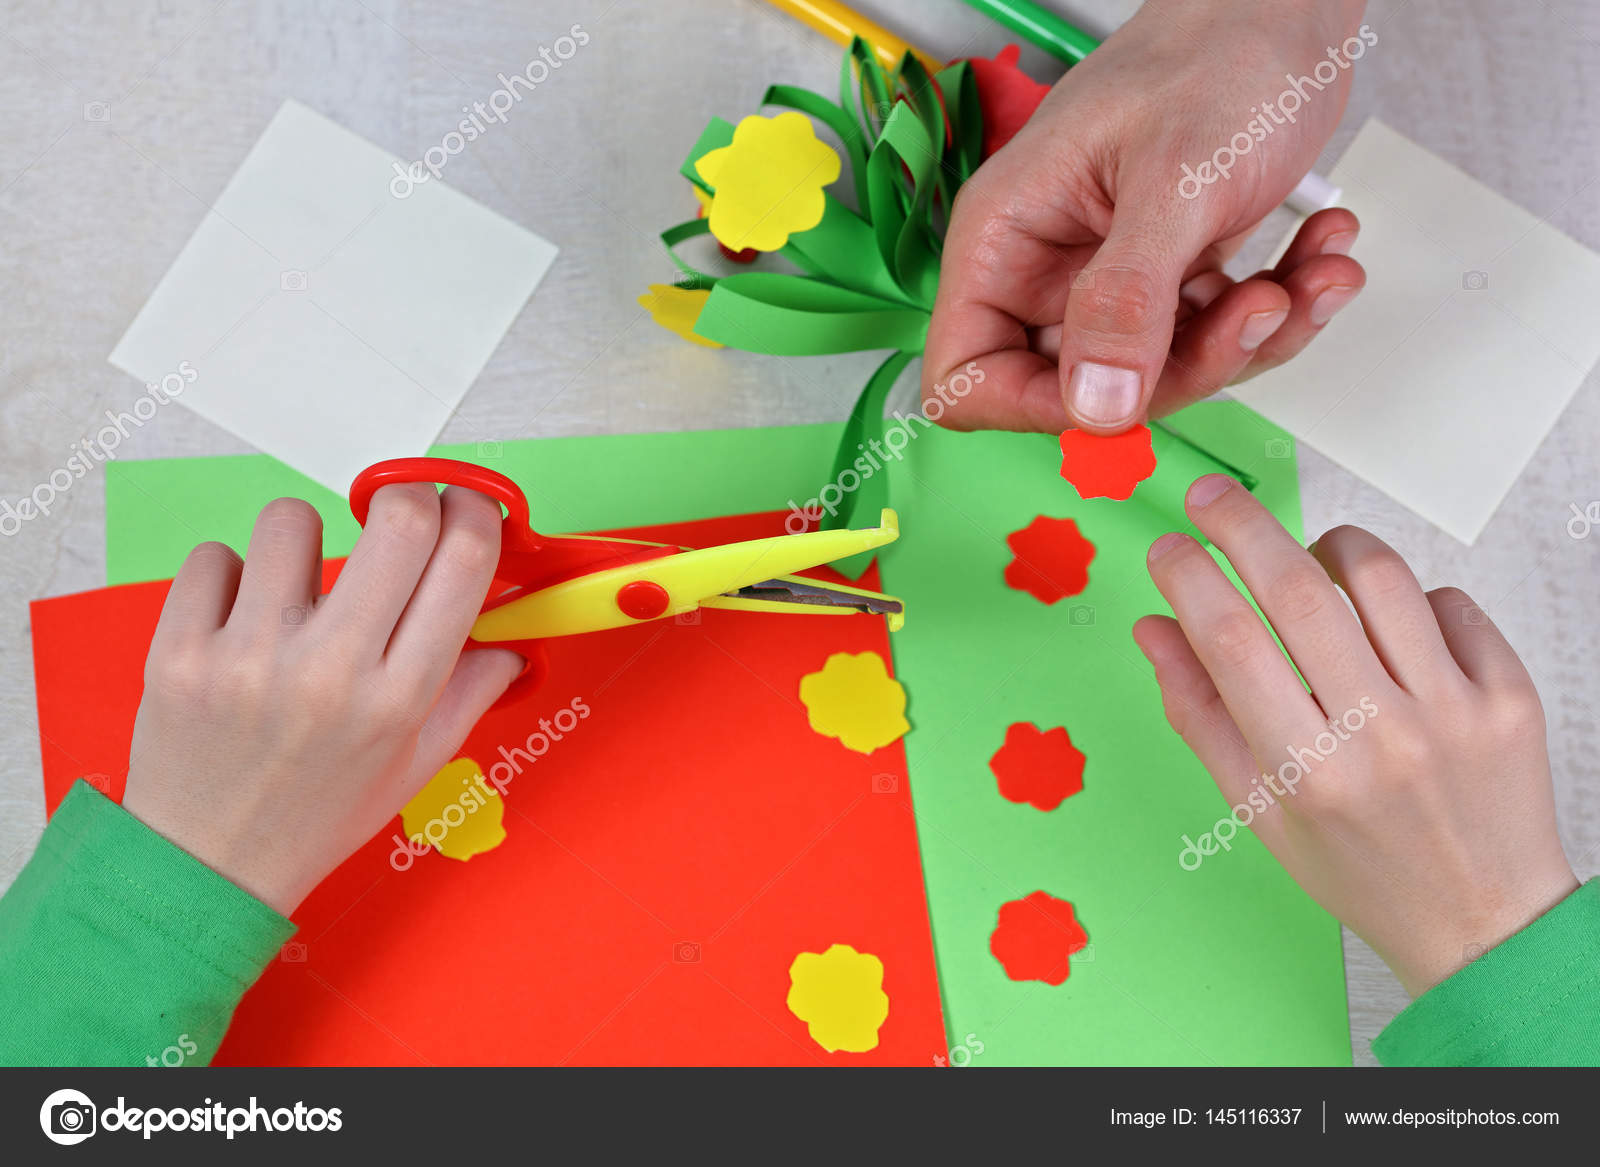 Child Cut Out Of Colored Paper Kid Making Birthday Card Father And Son Preparing Presents For Mothers Day Or 8 March Kids Art Projects